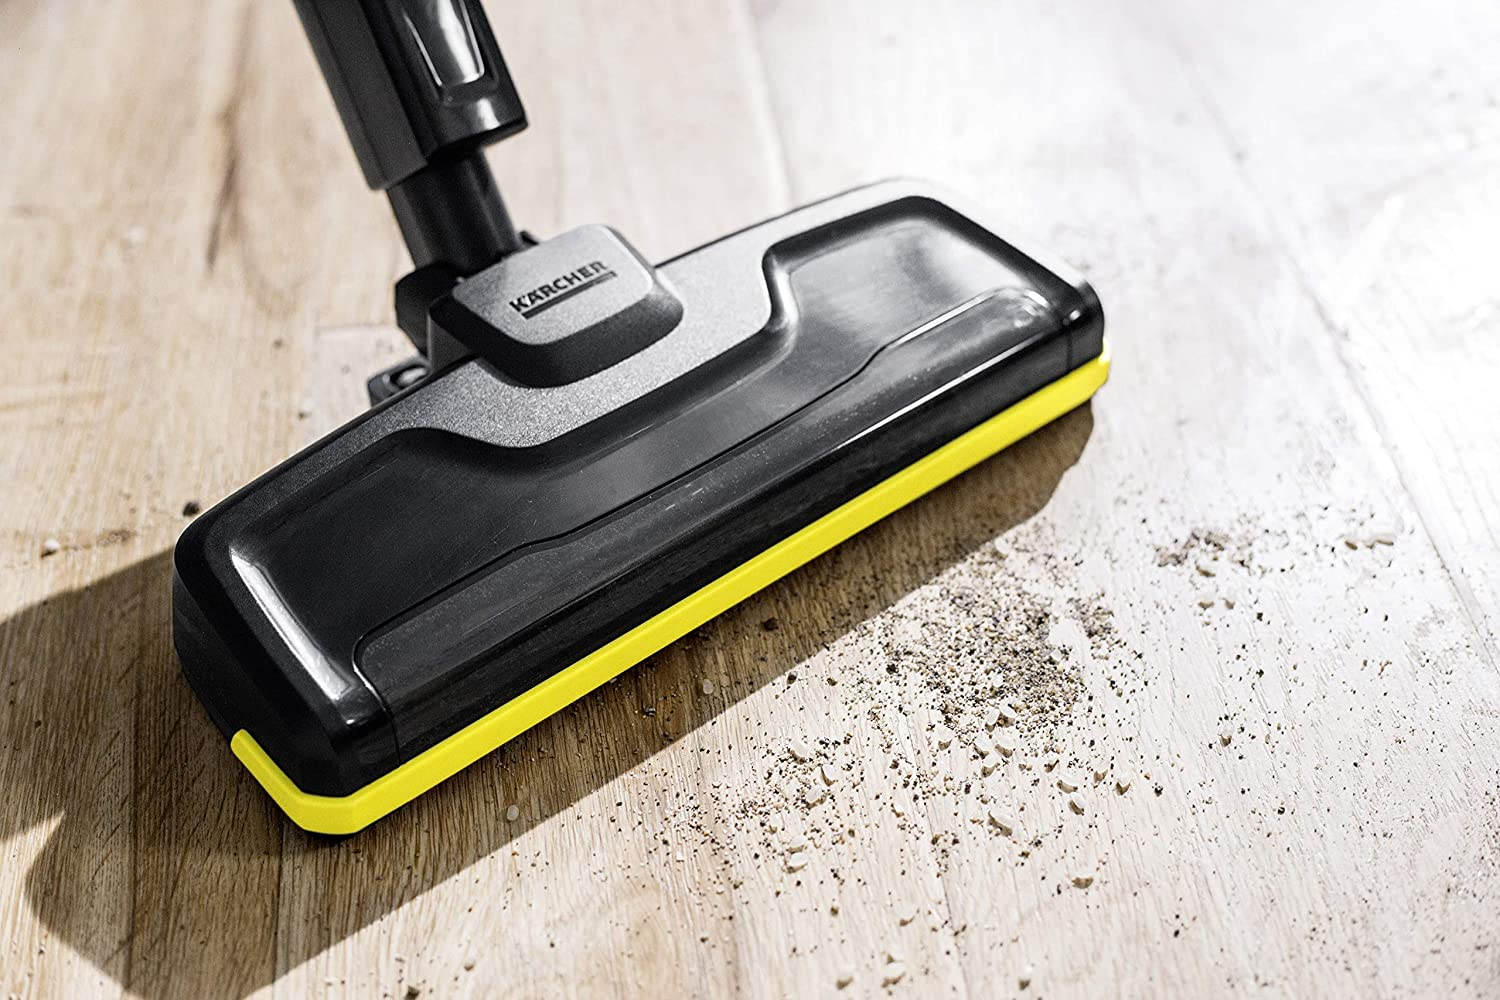 Amazon.com: Karcher Vac Kärcher VC4i - Barra de vacío ...